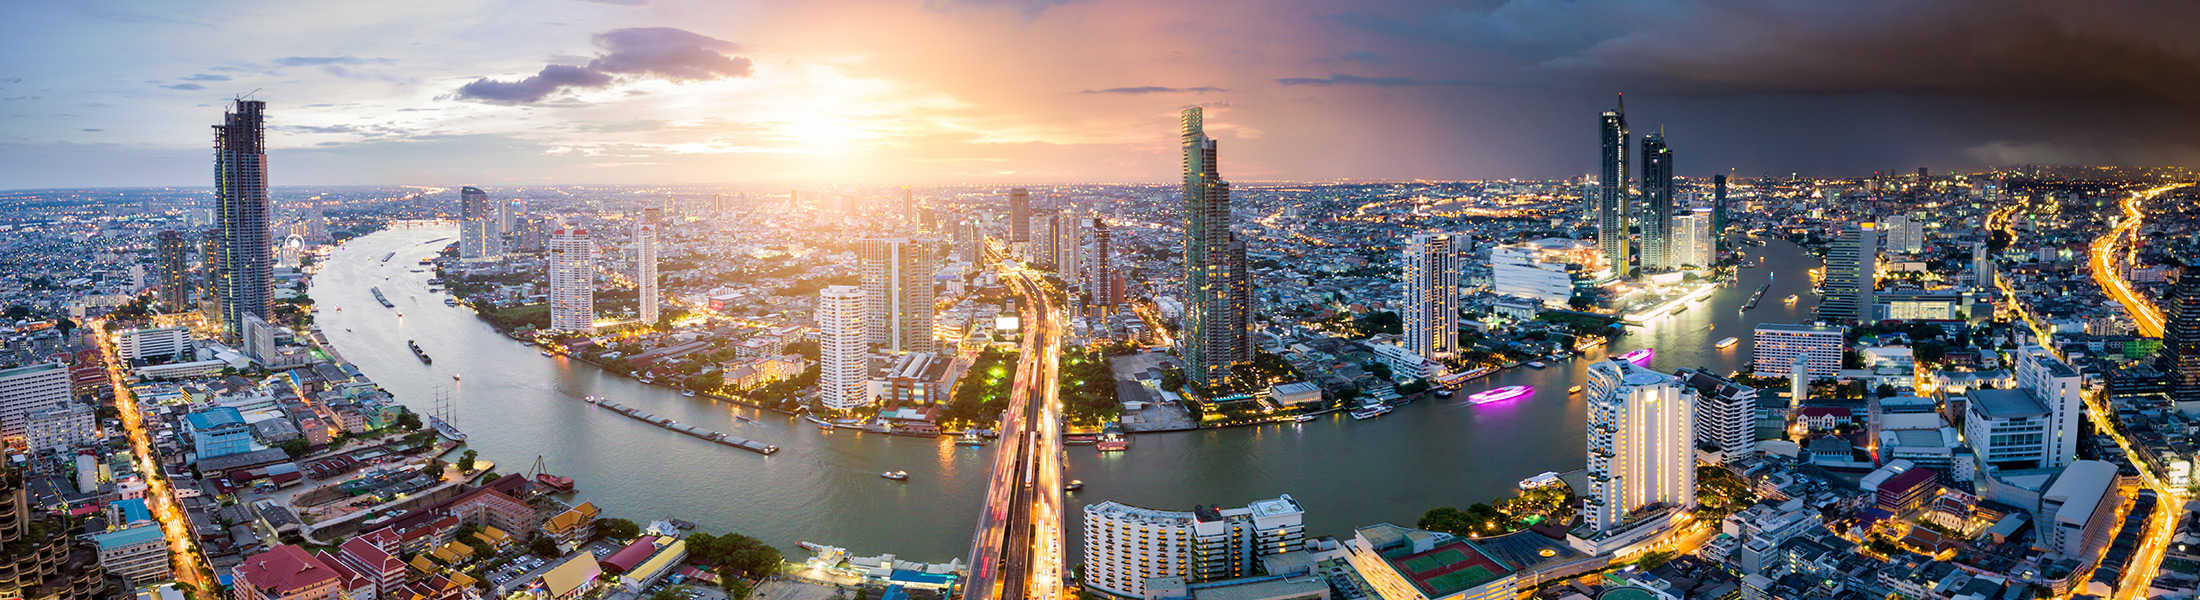 Aerial view of Bangkok at sunset on a Thailand Multi-centre